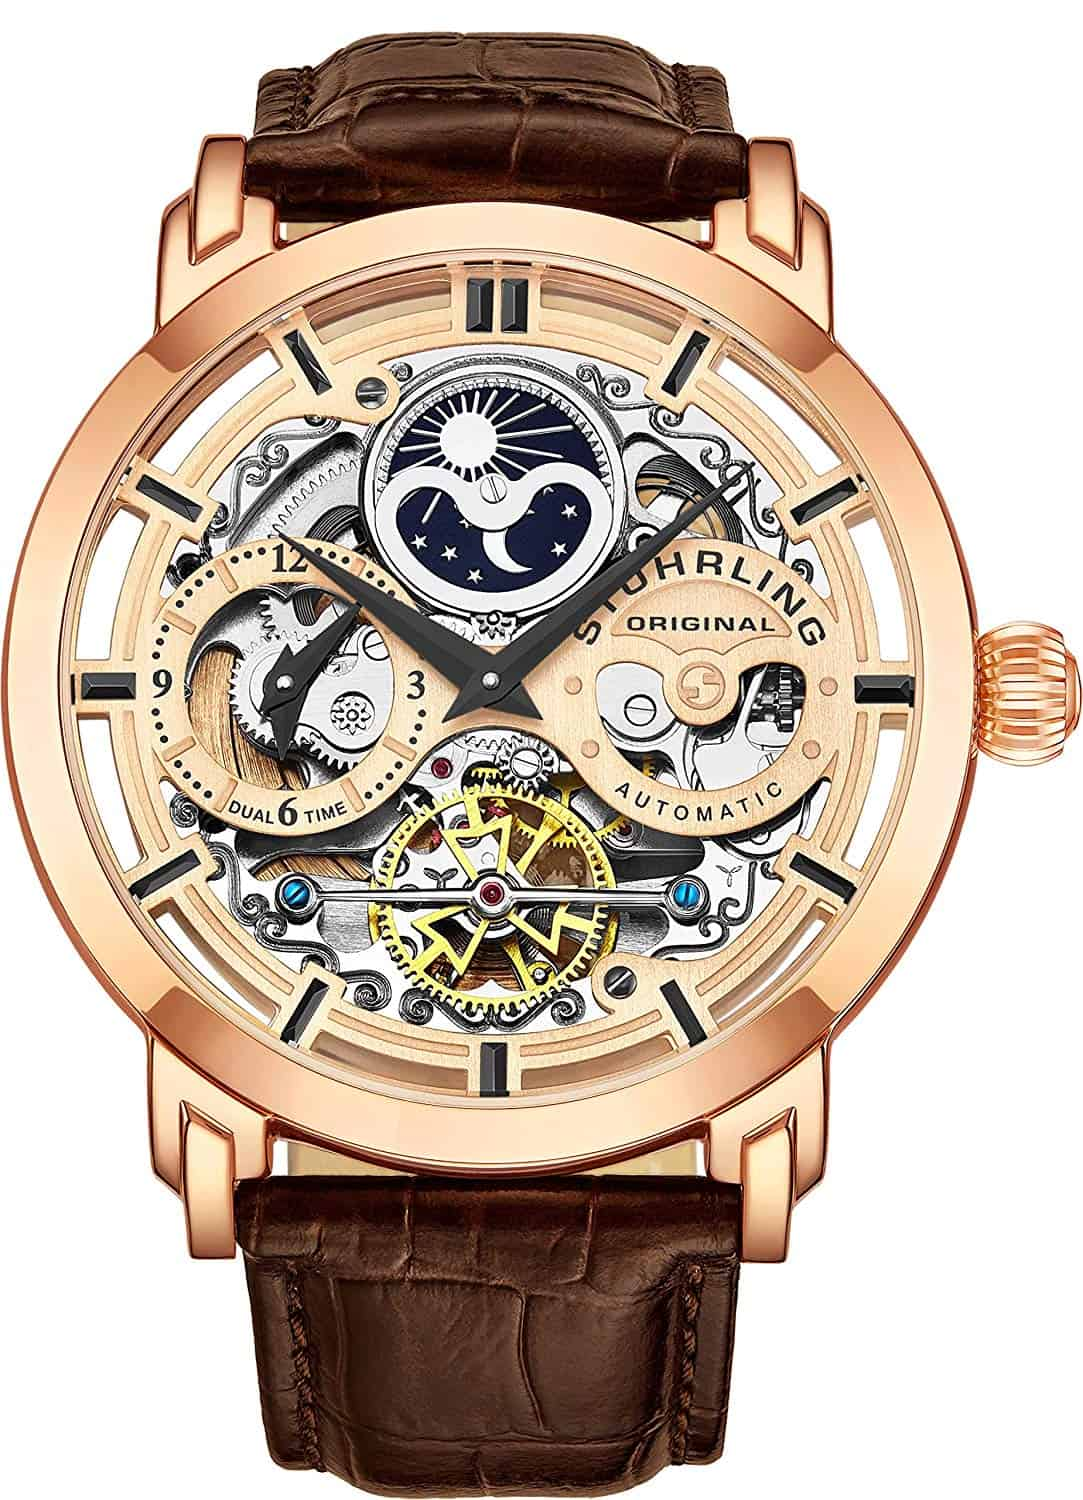 Stuhrling 371Z.03 mens watches